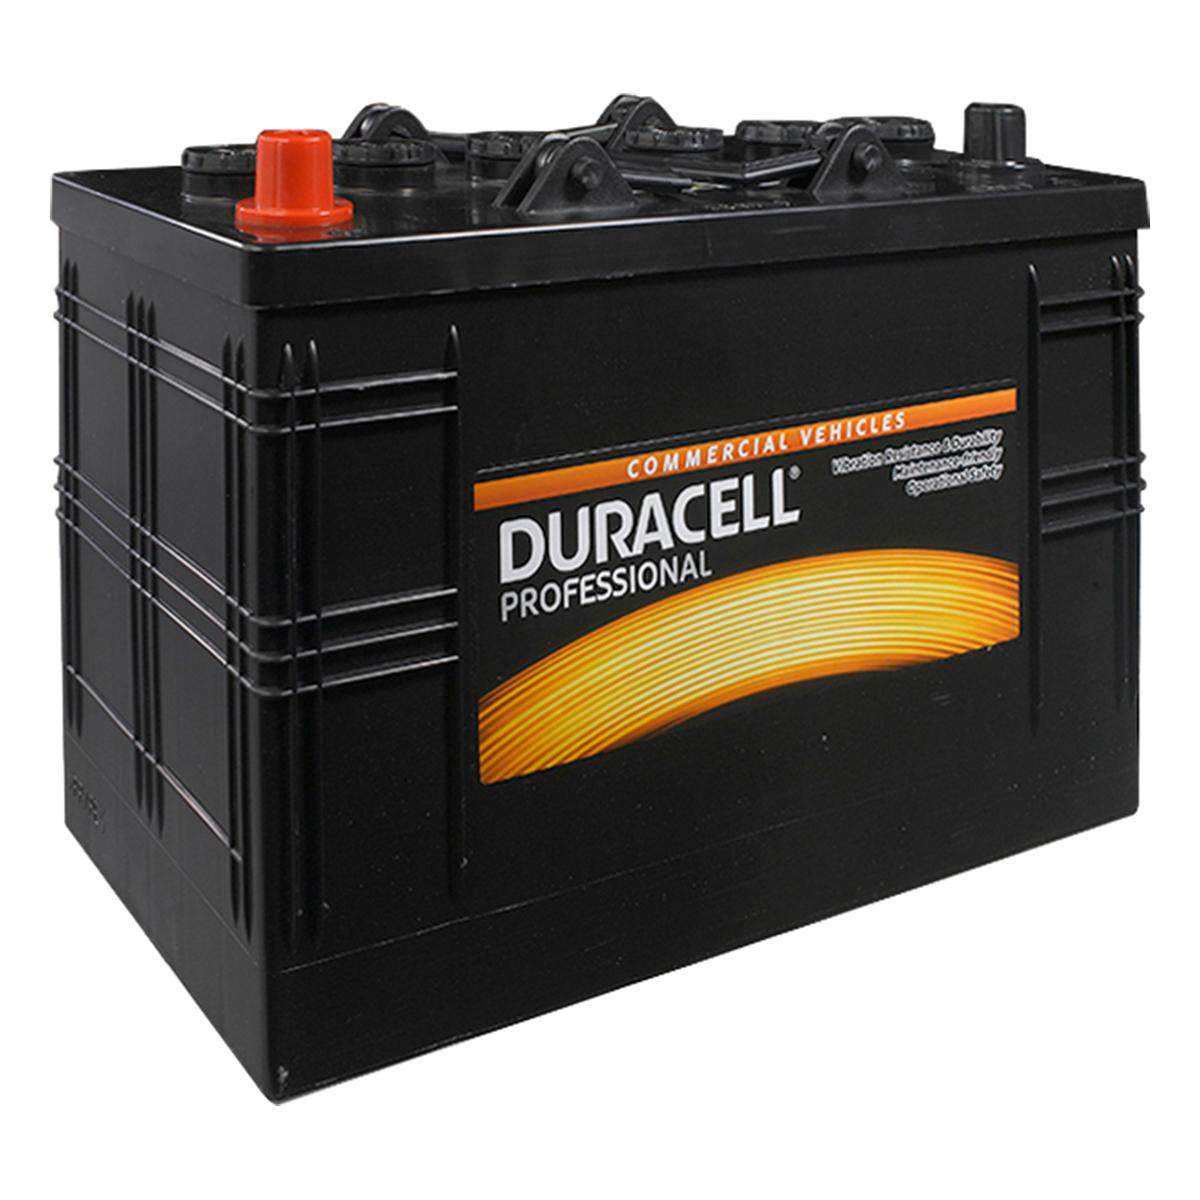 Duracell 664 / DP110L Professional Commercial Vehicle